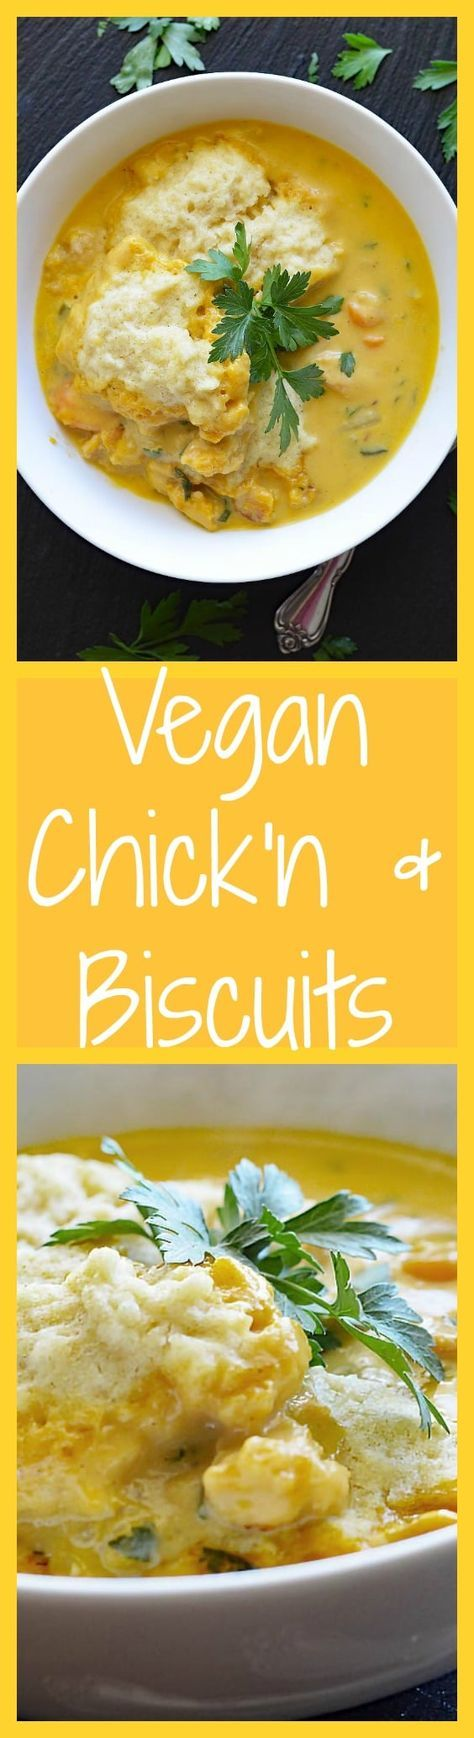 Vegan Chicken and Biscuits